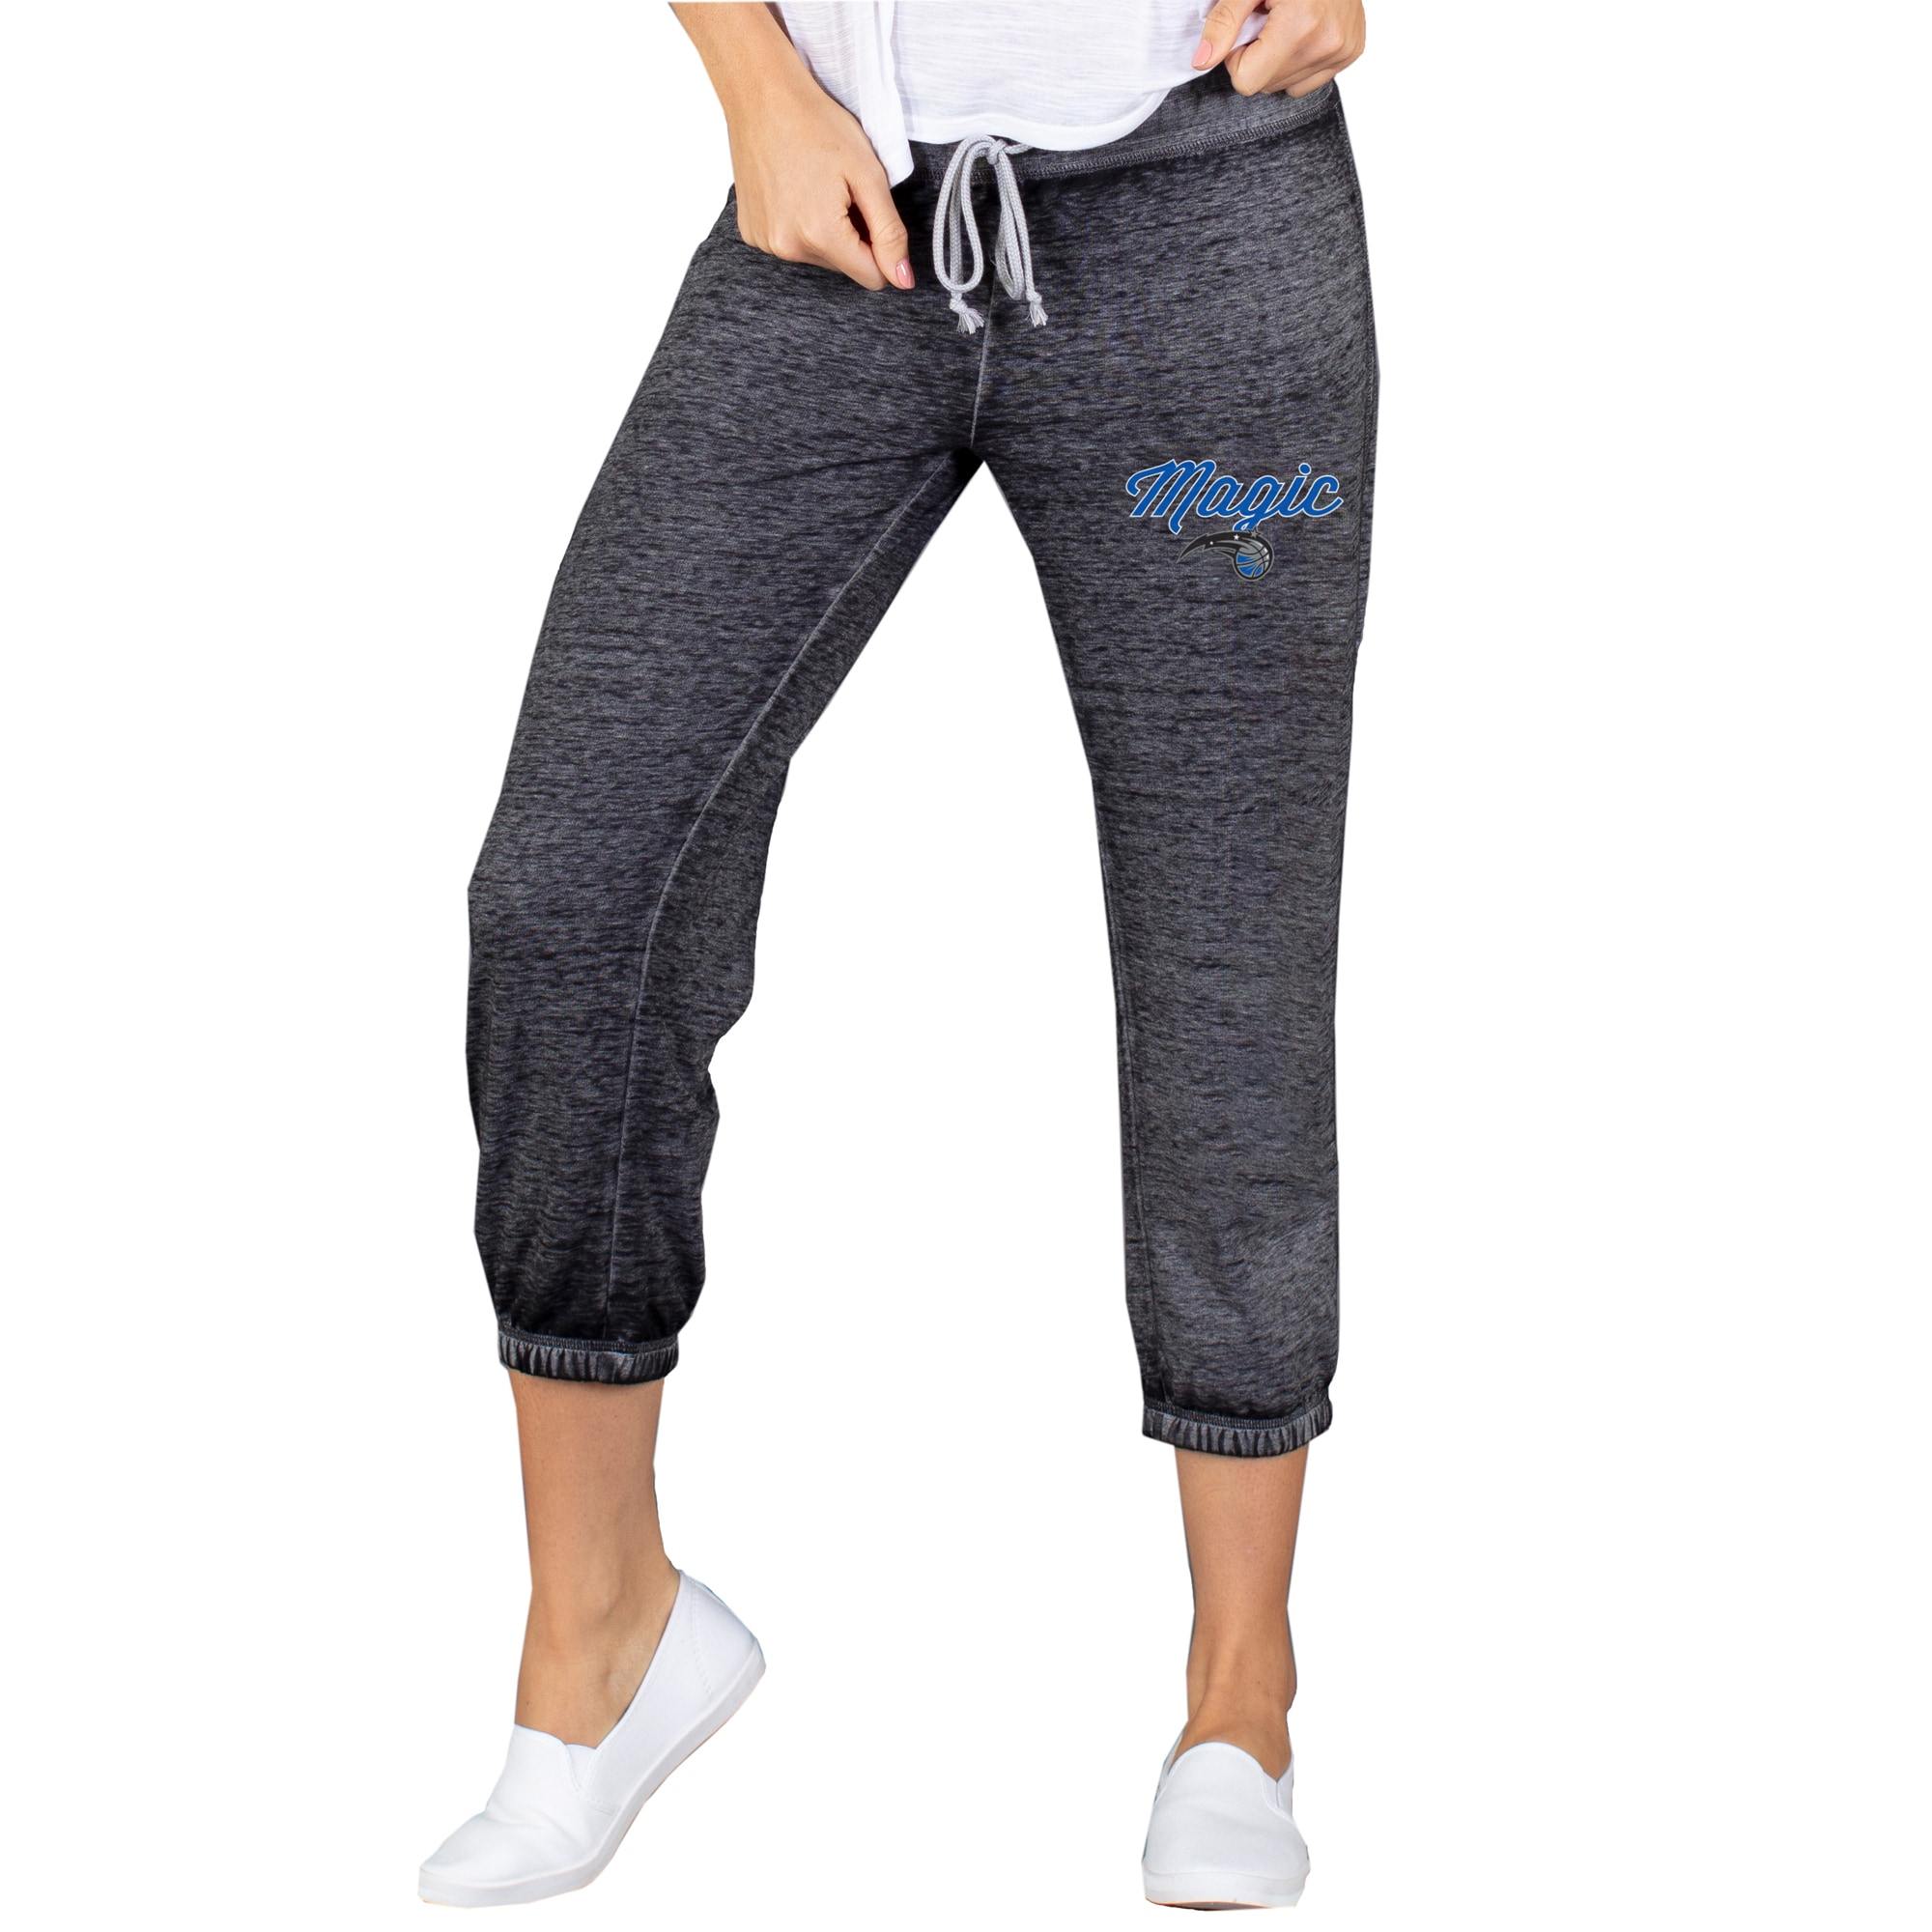 Orlando Magic Concepts Sport Women's Capri Knit Lounge Pants - Charcoal